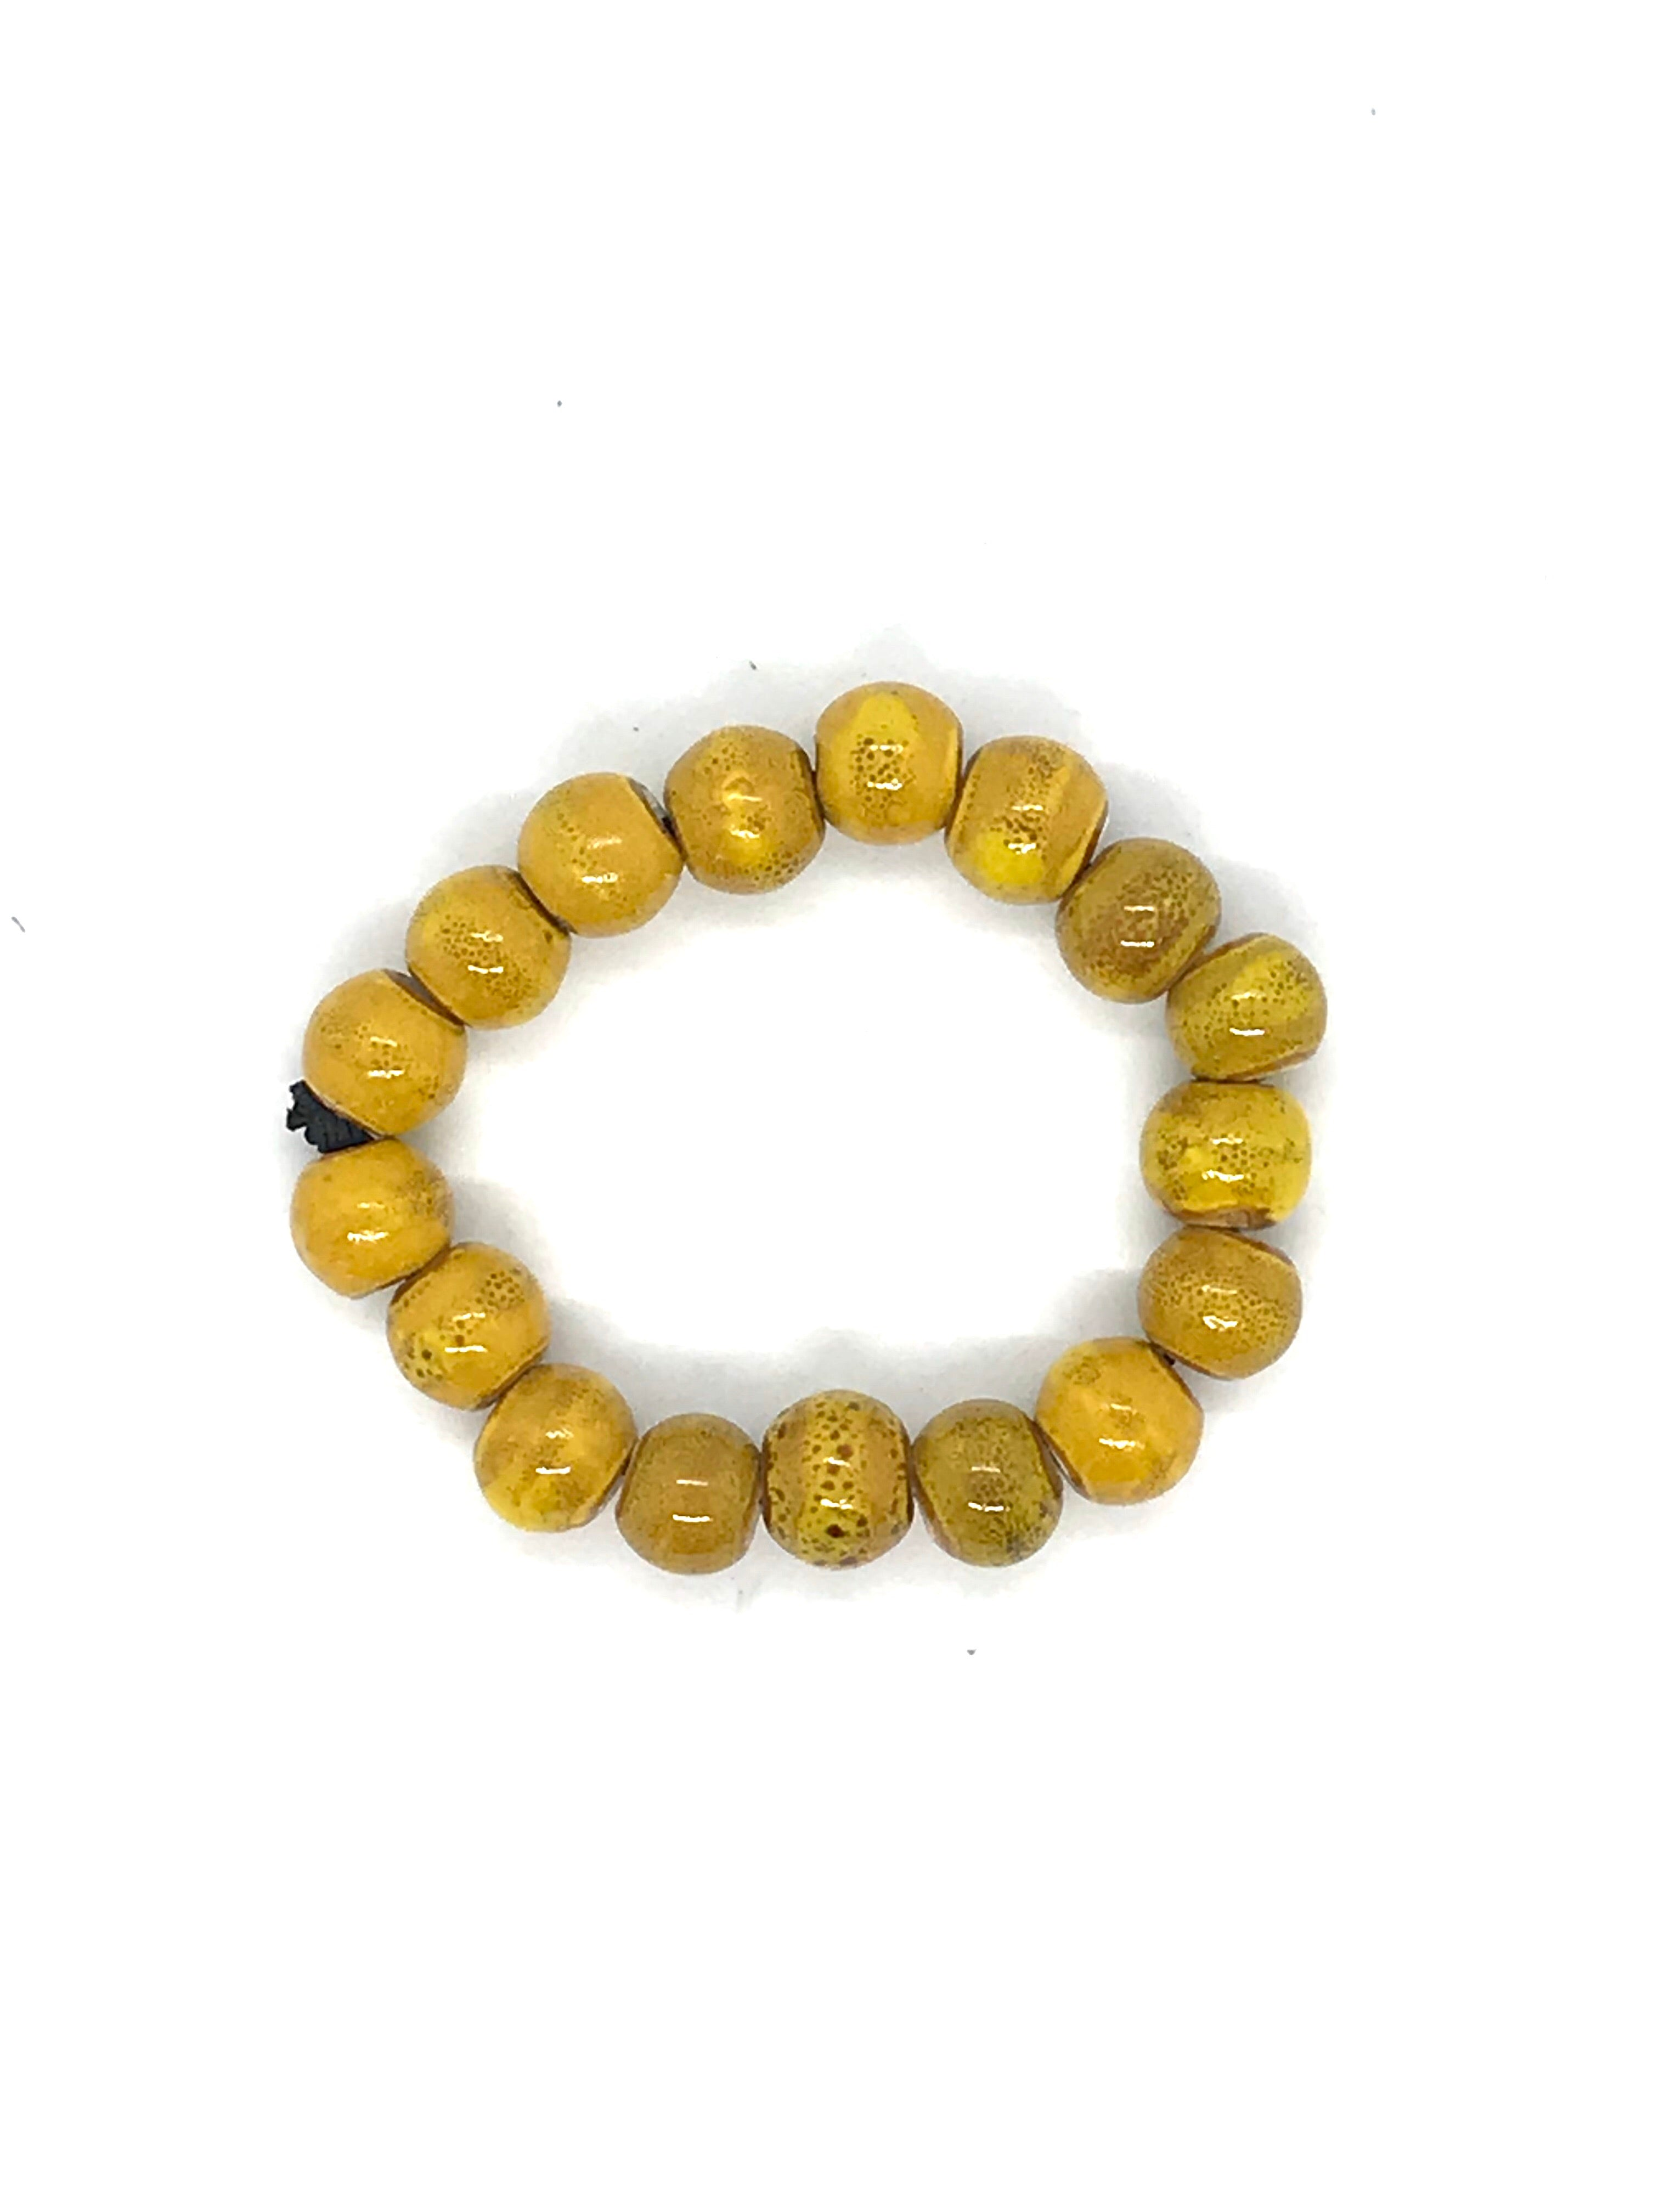 JIANHUI EGG SHAPE CERAMIC BRACELET BL1914-3 YELLOW